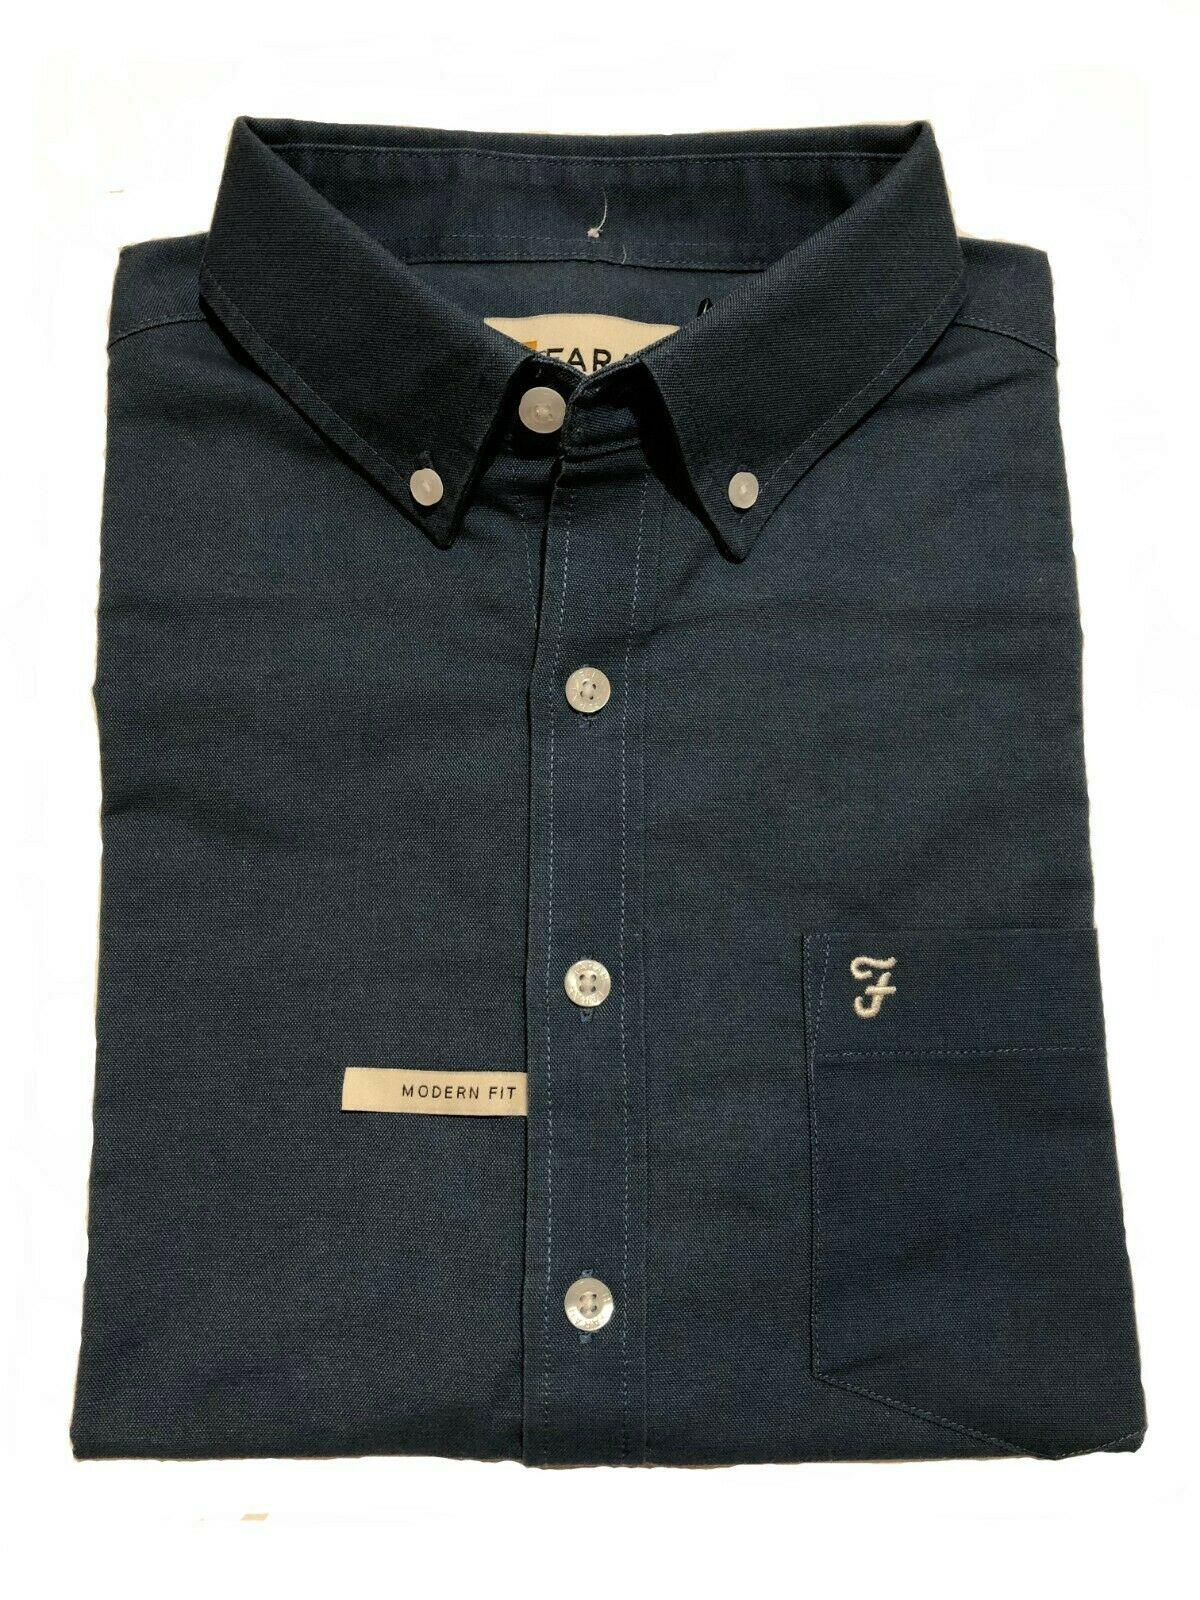 drayton plain polycotton short sleeved shirt (navy blue)